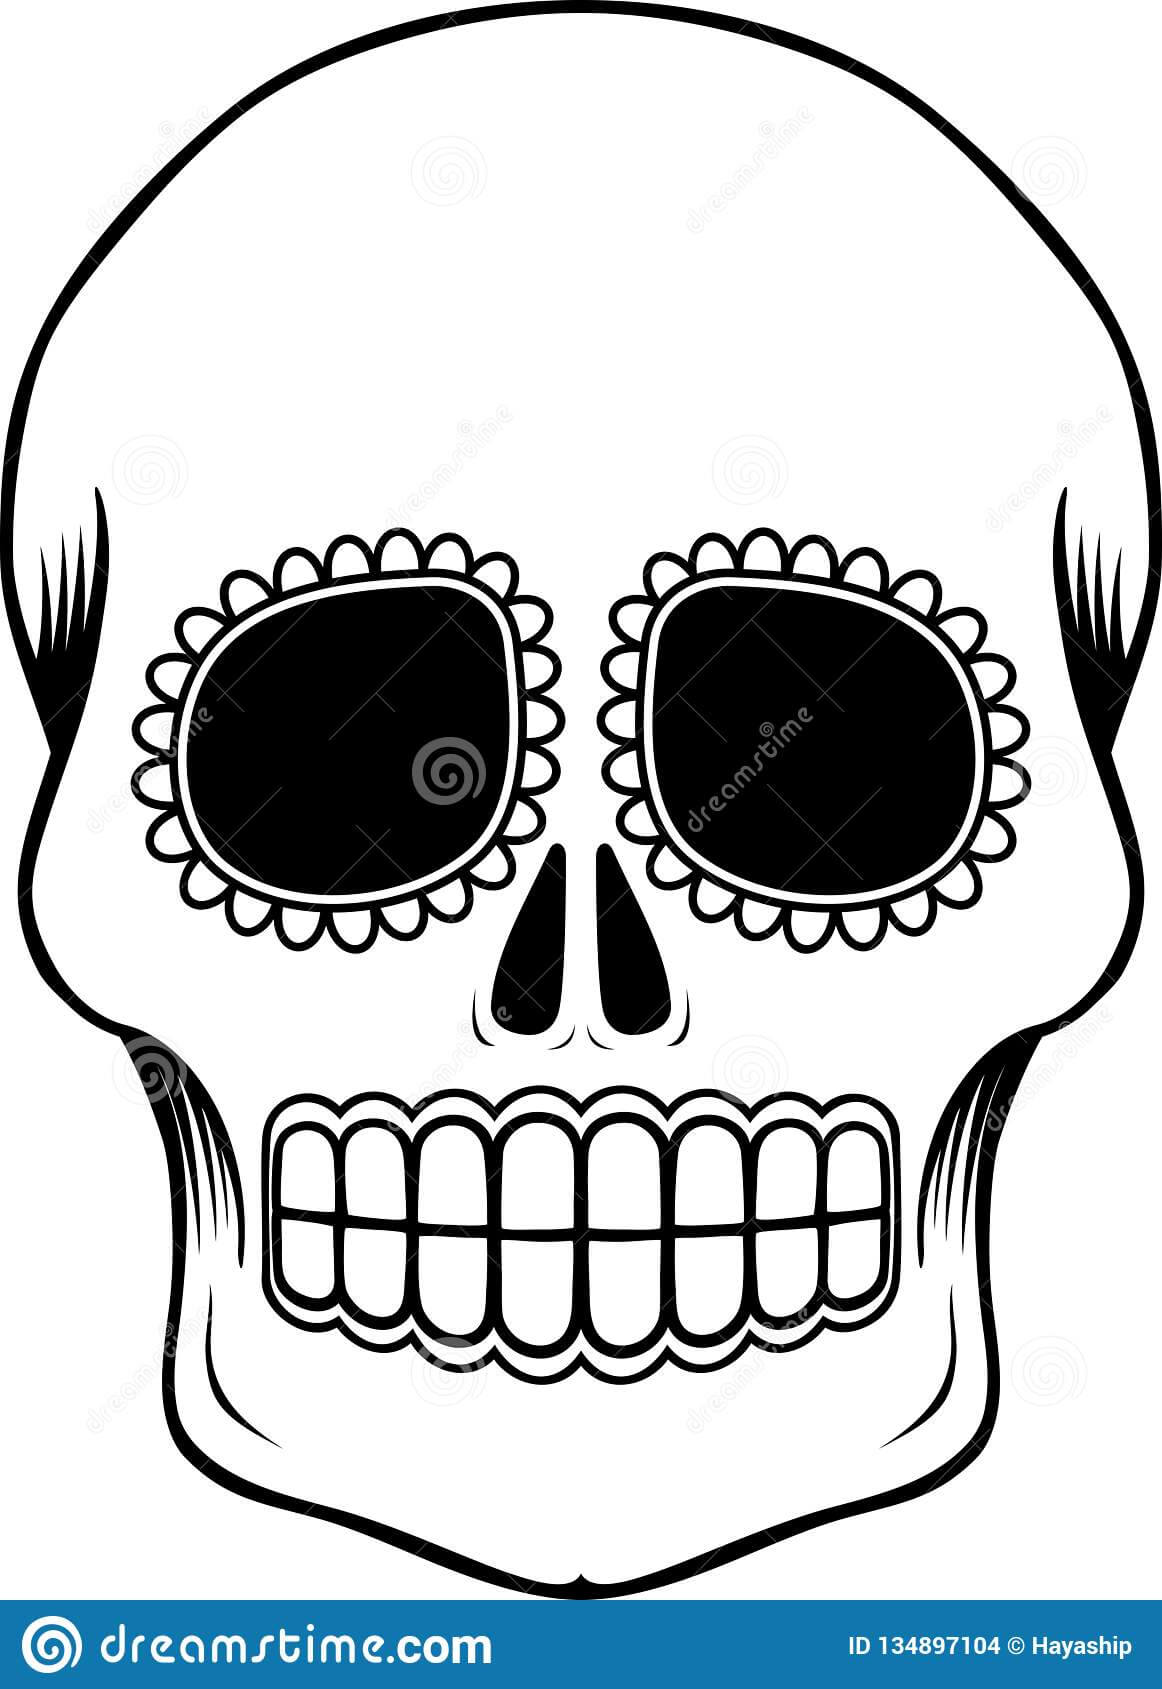 Mexican Sugar Skull Template Stock Vector - Illustration Of With Blank Sugar Skull Template